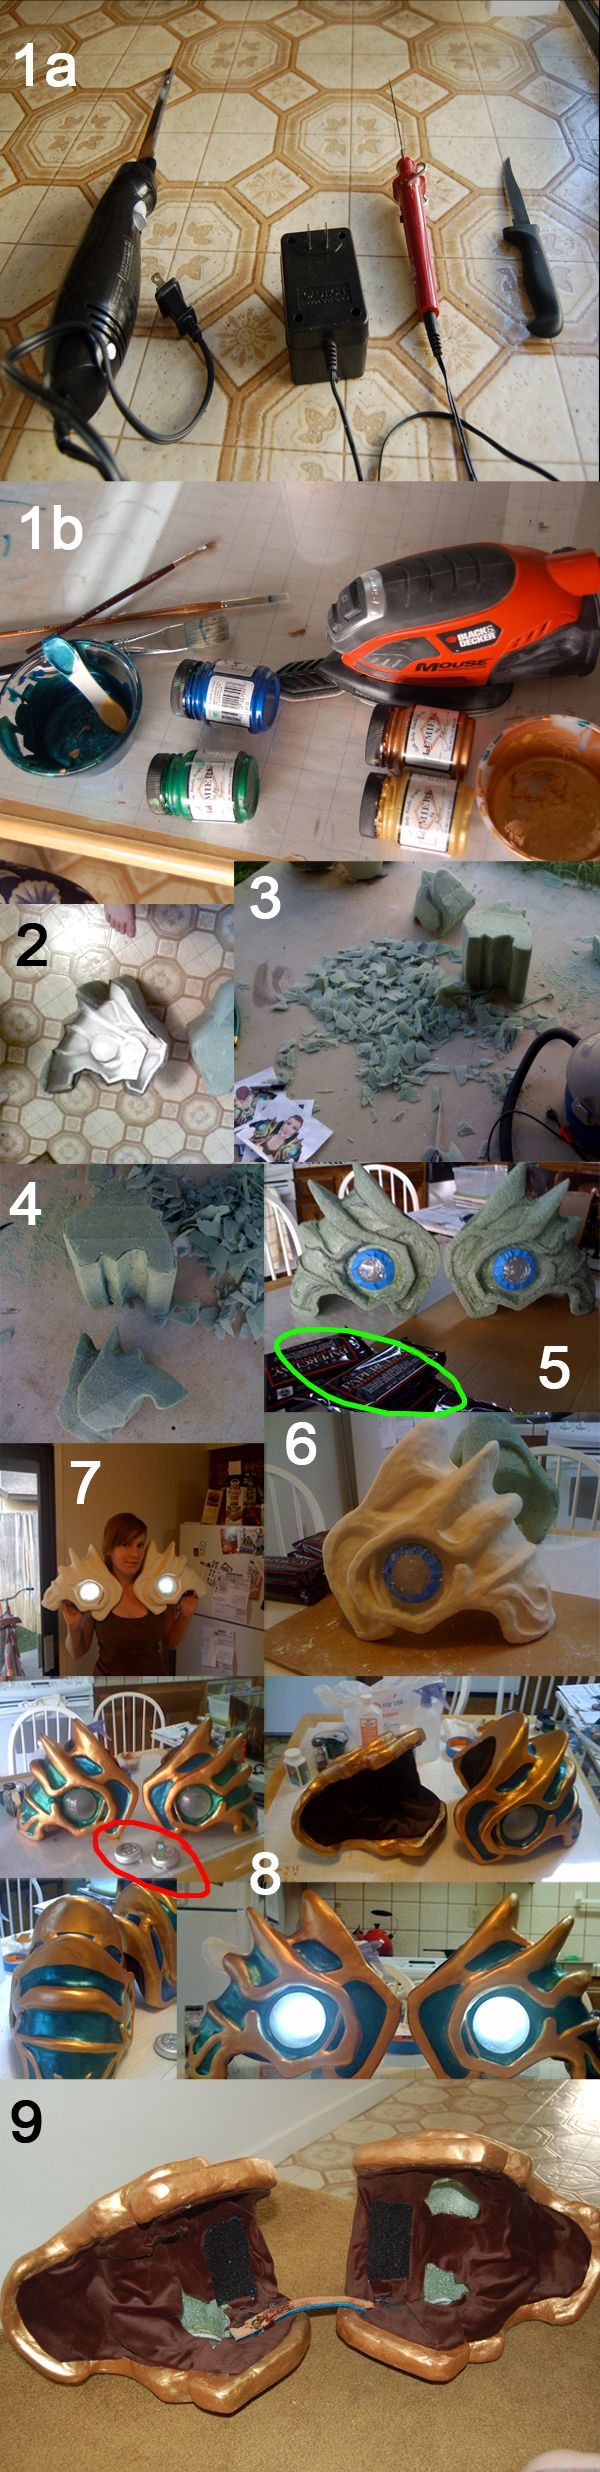 Foam armor carving tutorial (explanation on actual page)